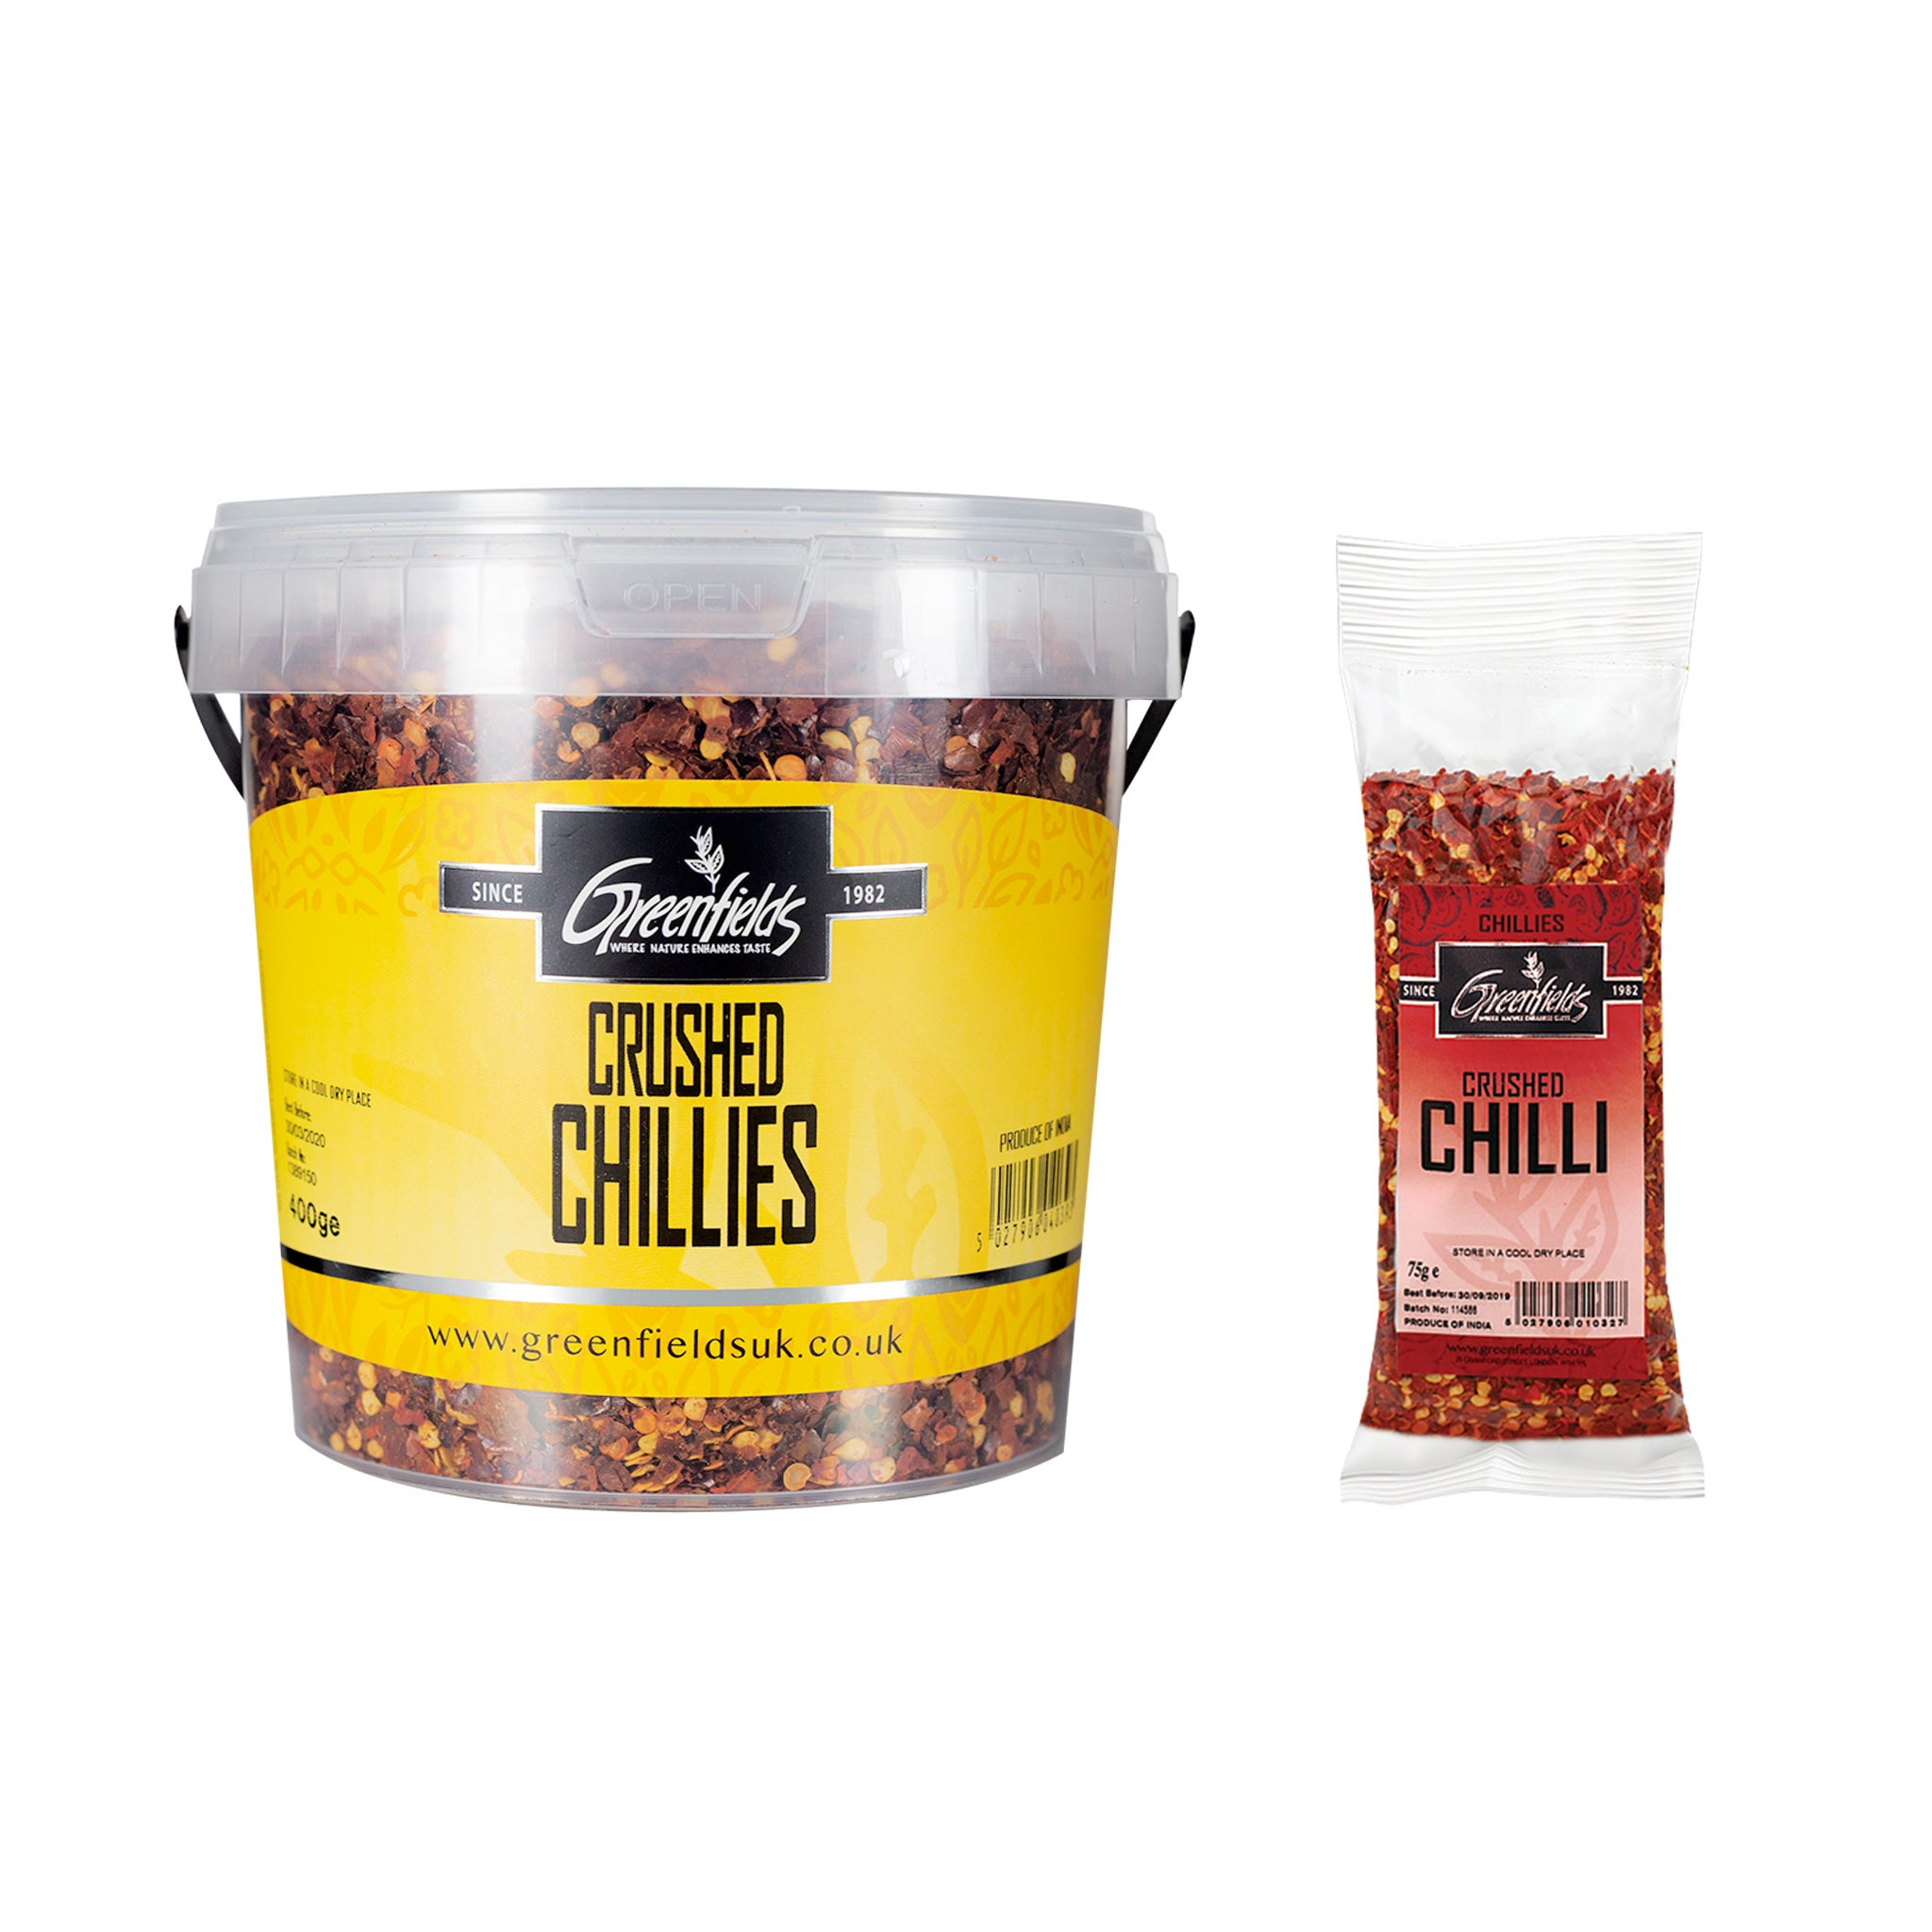 Greenfields Crushed Chillies